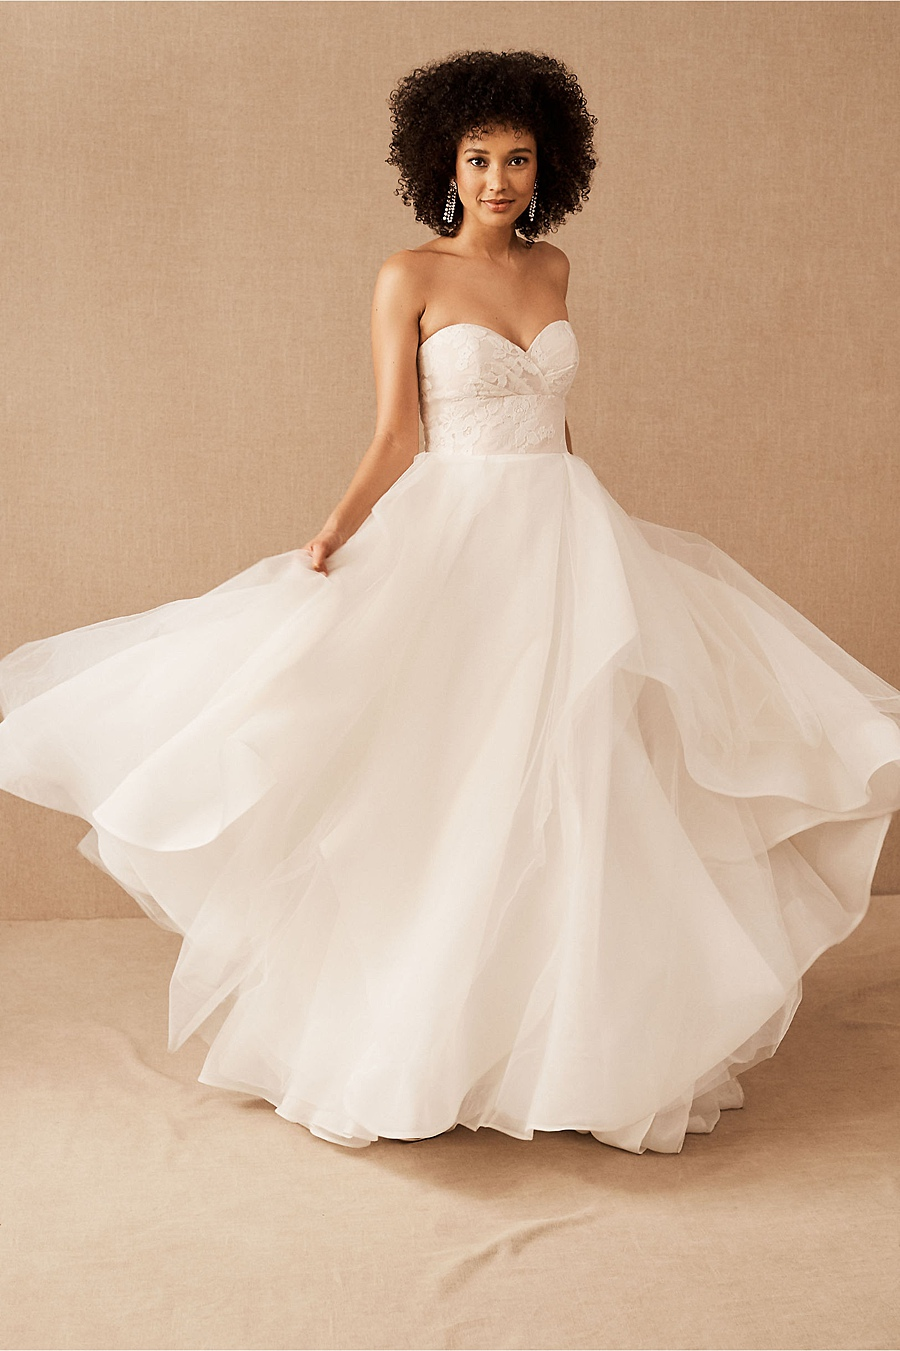 how to buy a cheap and legit wedding dress online without getting scammed wedding dresses cheap online destination wedding dresses 19